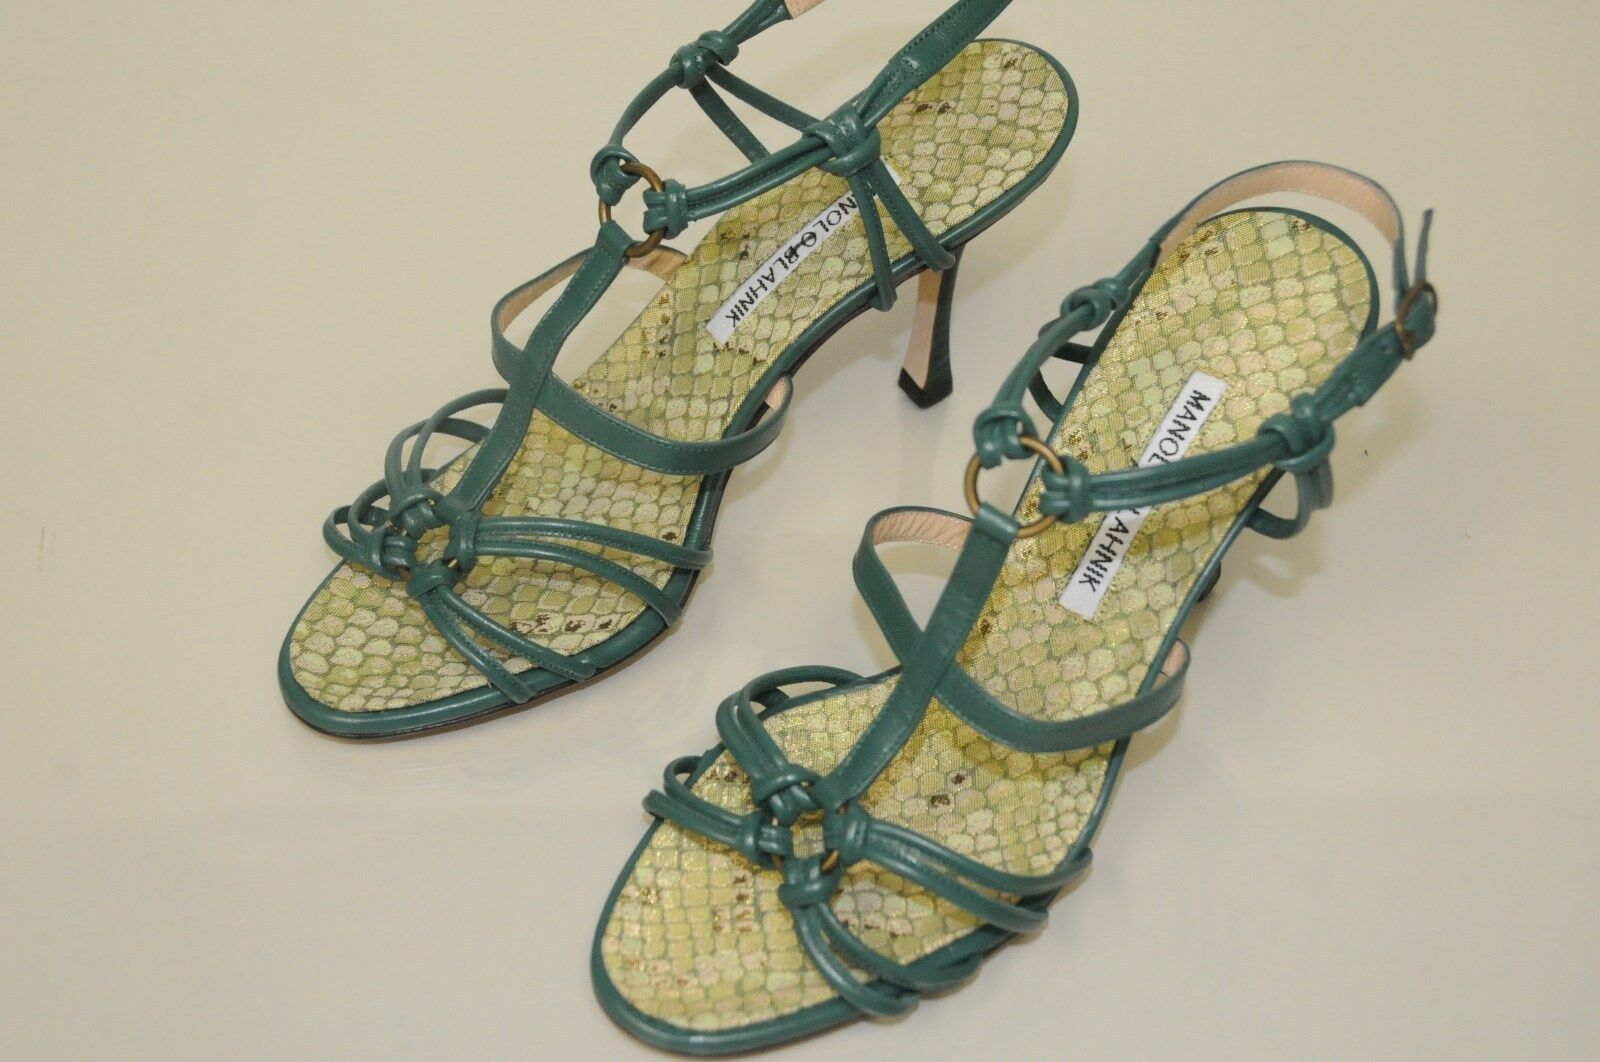 835 New Manolo Blahnik  90 Green Leather Snake Brocade Strappy Sandals shoes 37